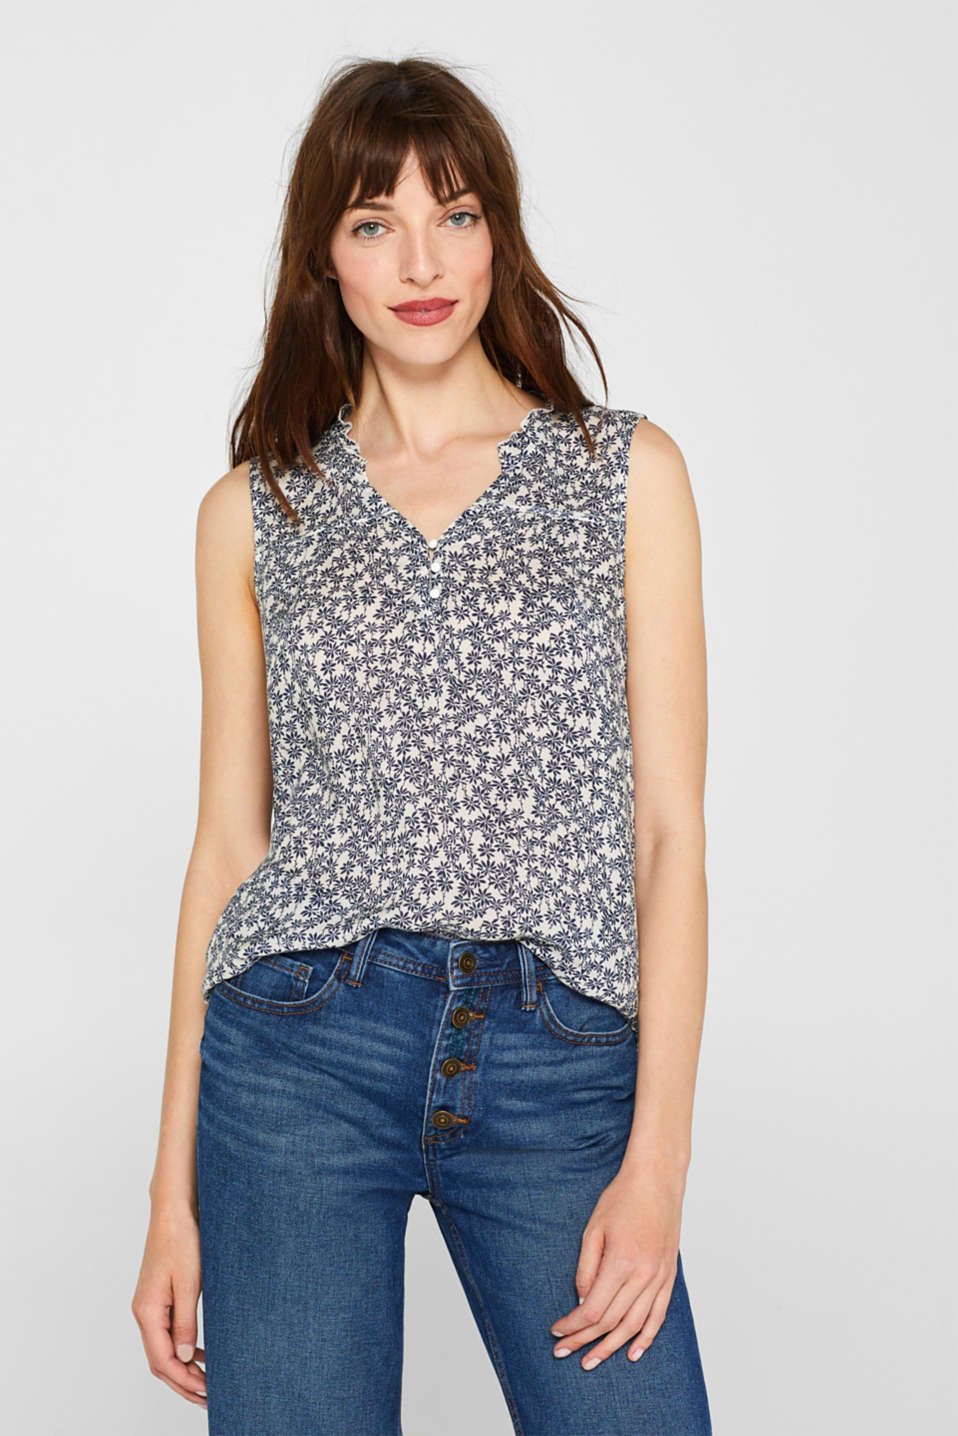 Blouse top with a print and ruffles